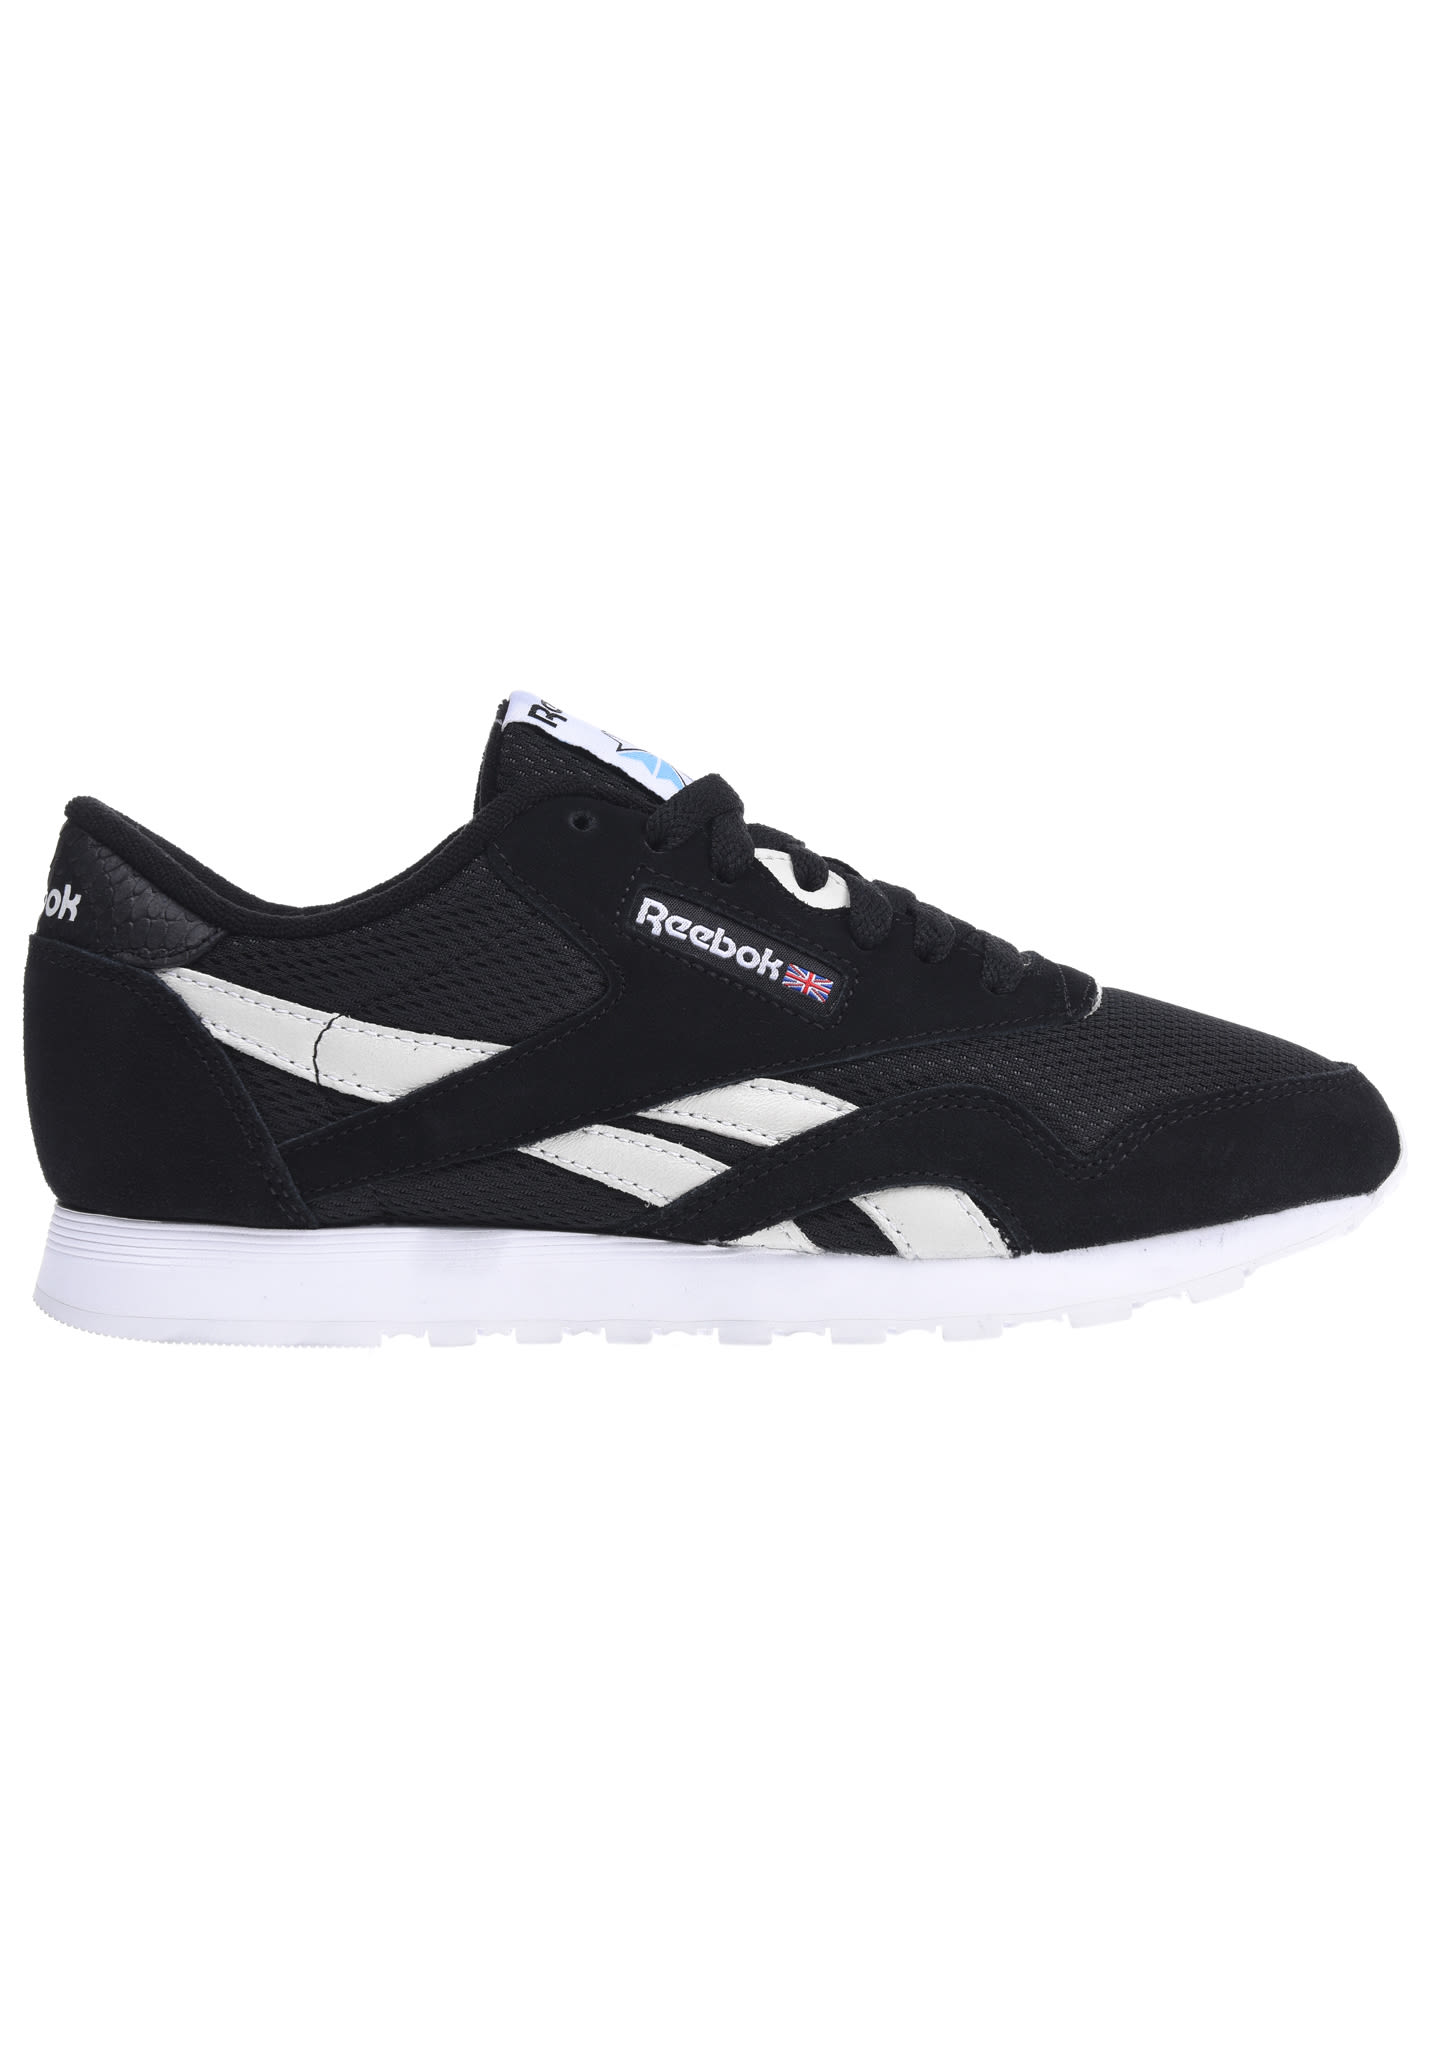 Classic Nylon FBT, Zapatillas para Mujer, Negro (Black/White/C.Blue/Electric Flash), 38 EU Reebok